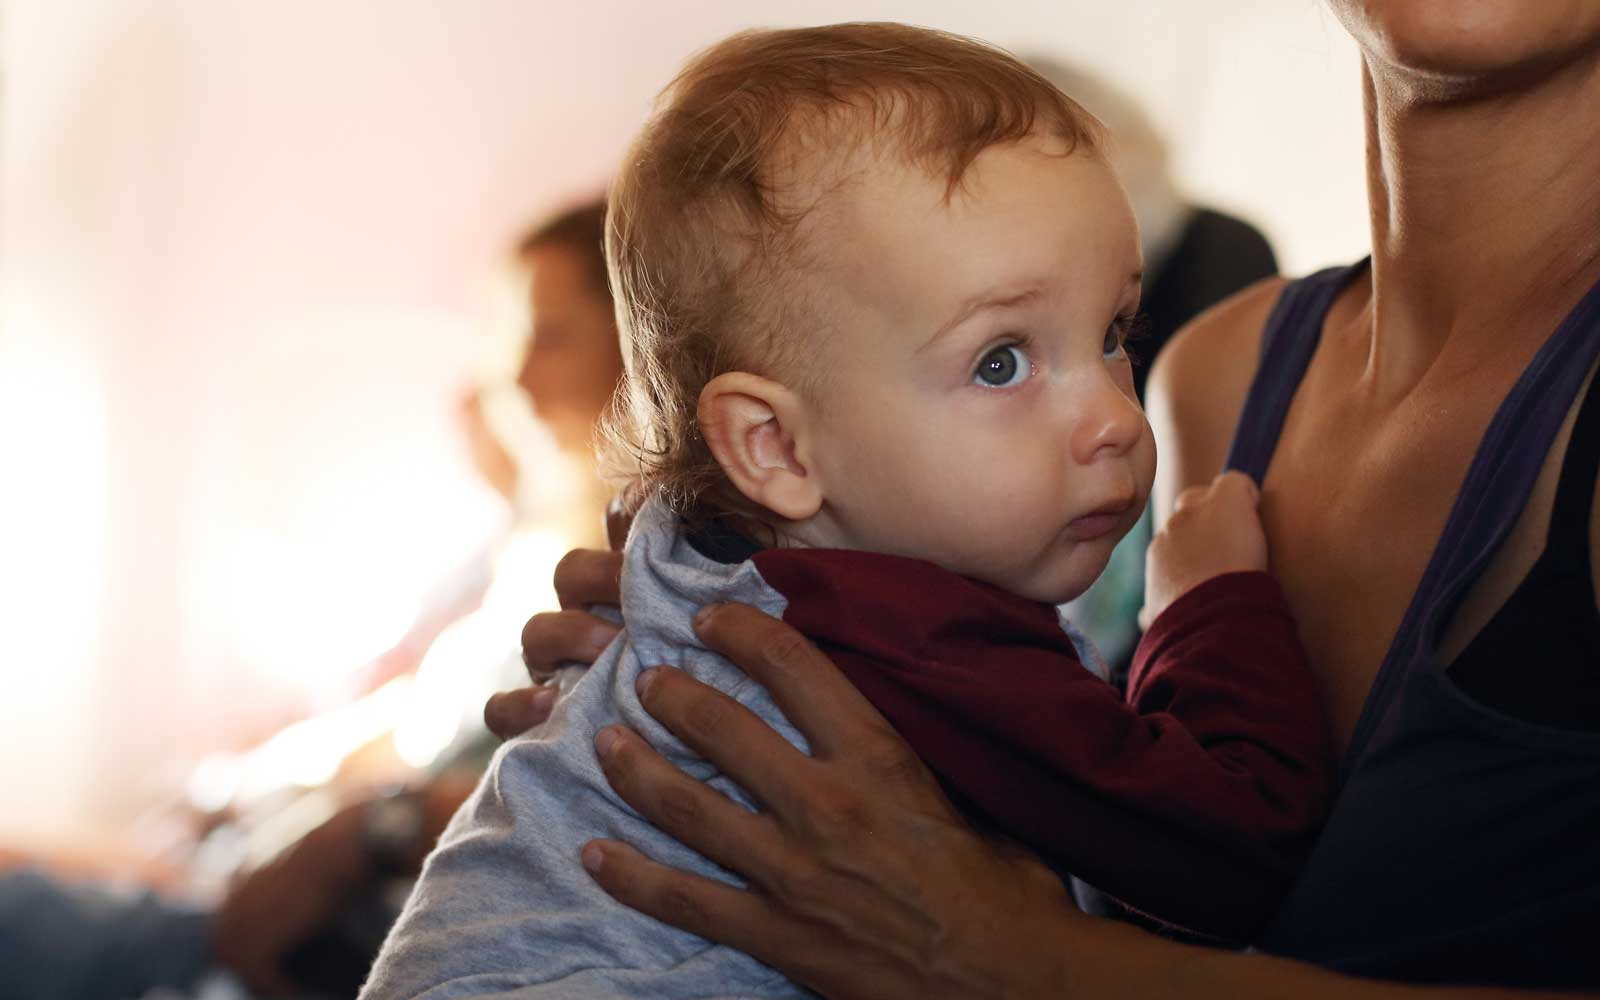 Passenger Removed From Flight After Tirade About Sitting Next to Toddler